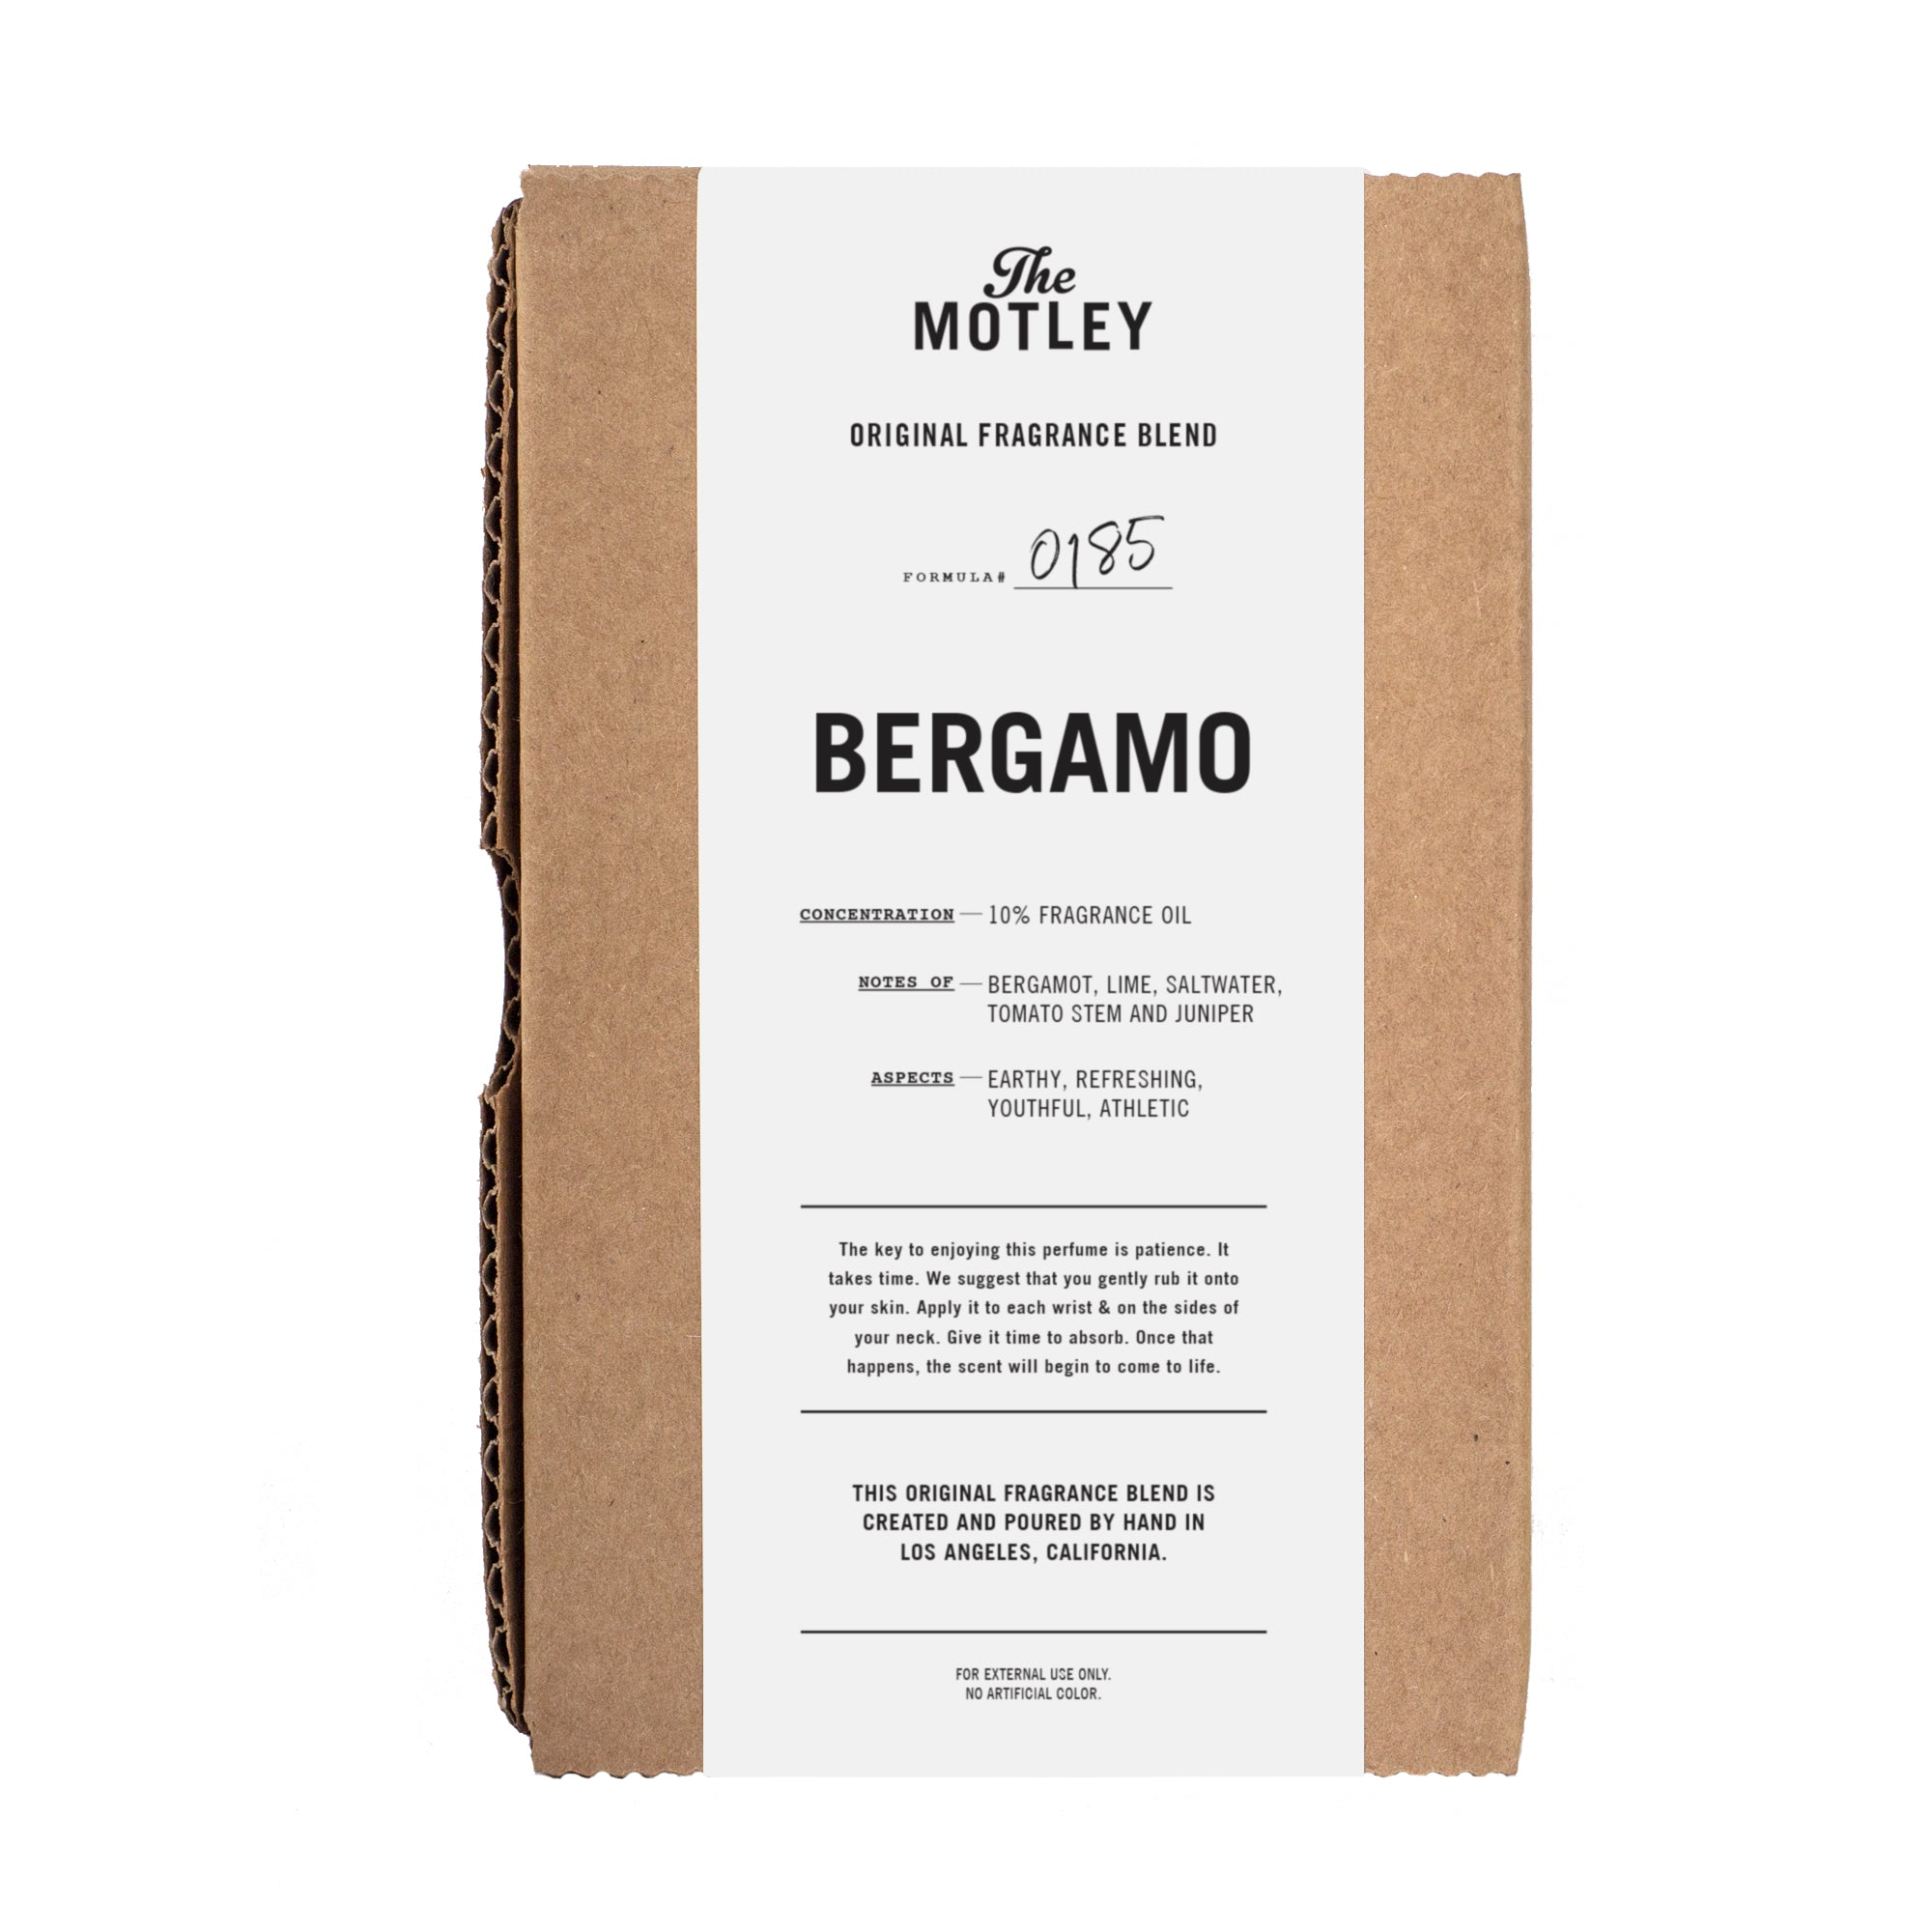 The Motley Bergamo Cologne - The Motley